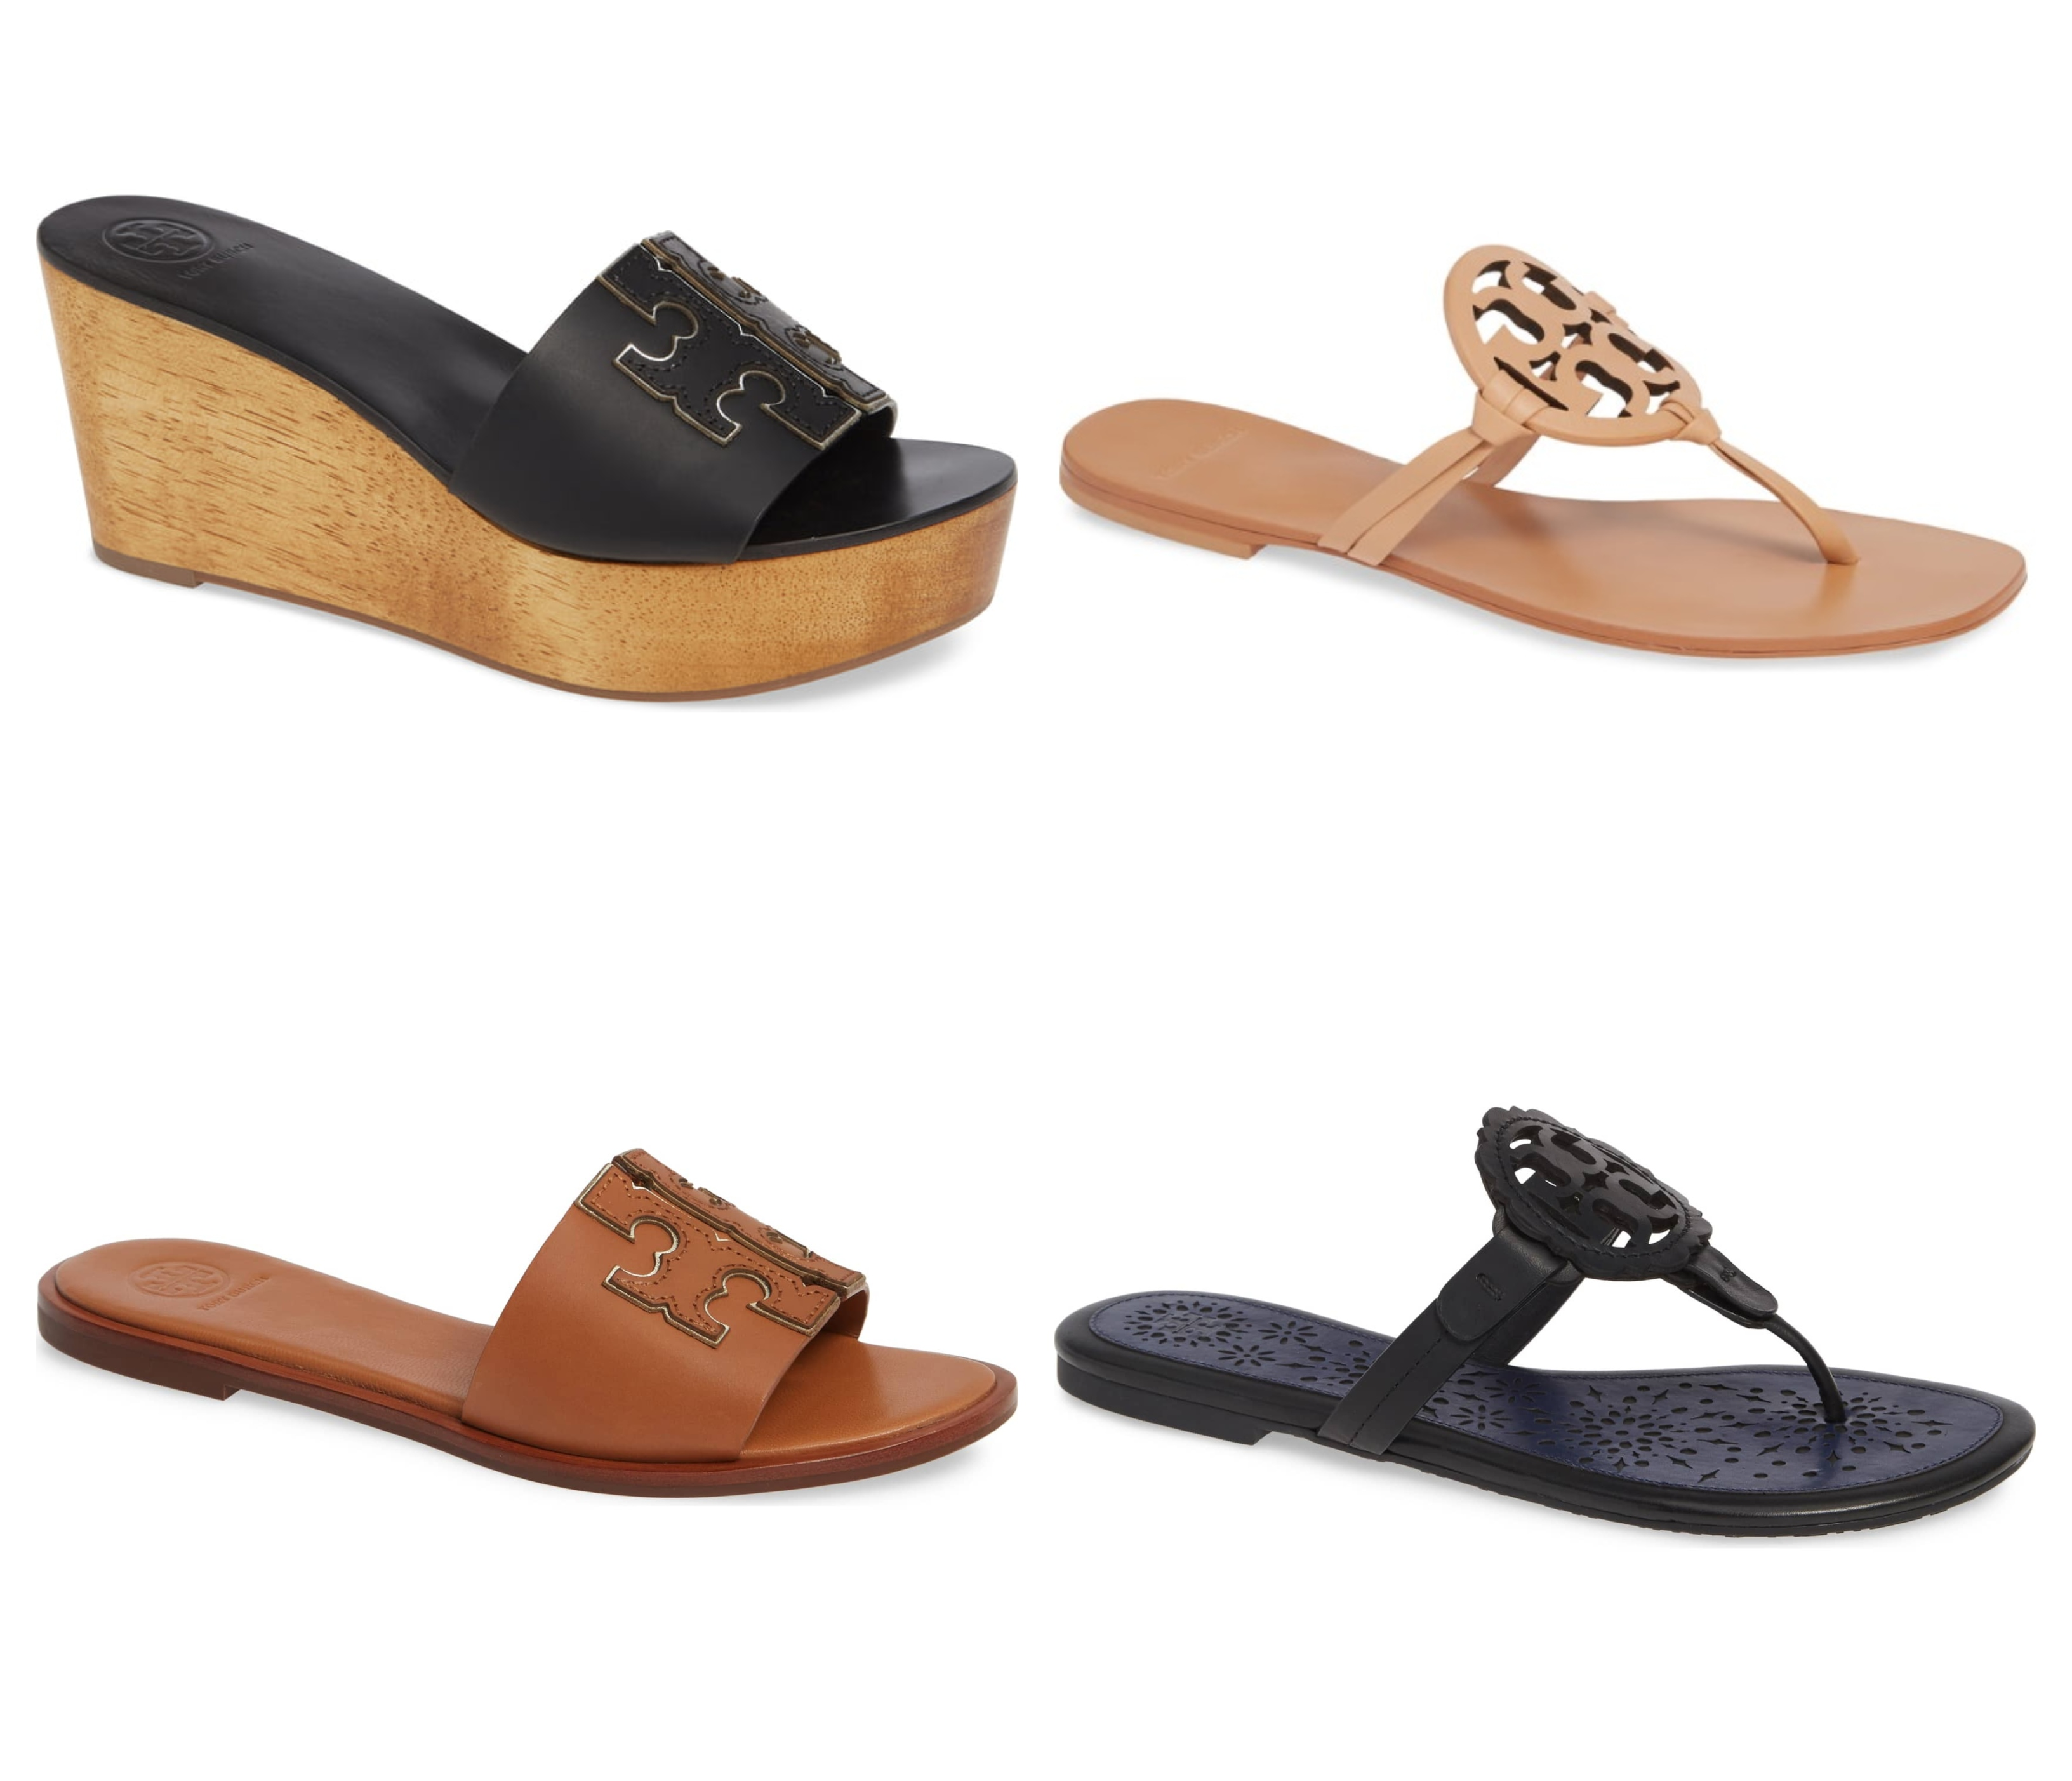 b144fe7b19f Nordstrom  20% Off Tory Burch Sandals + Free Shipping and Returns ...